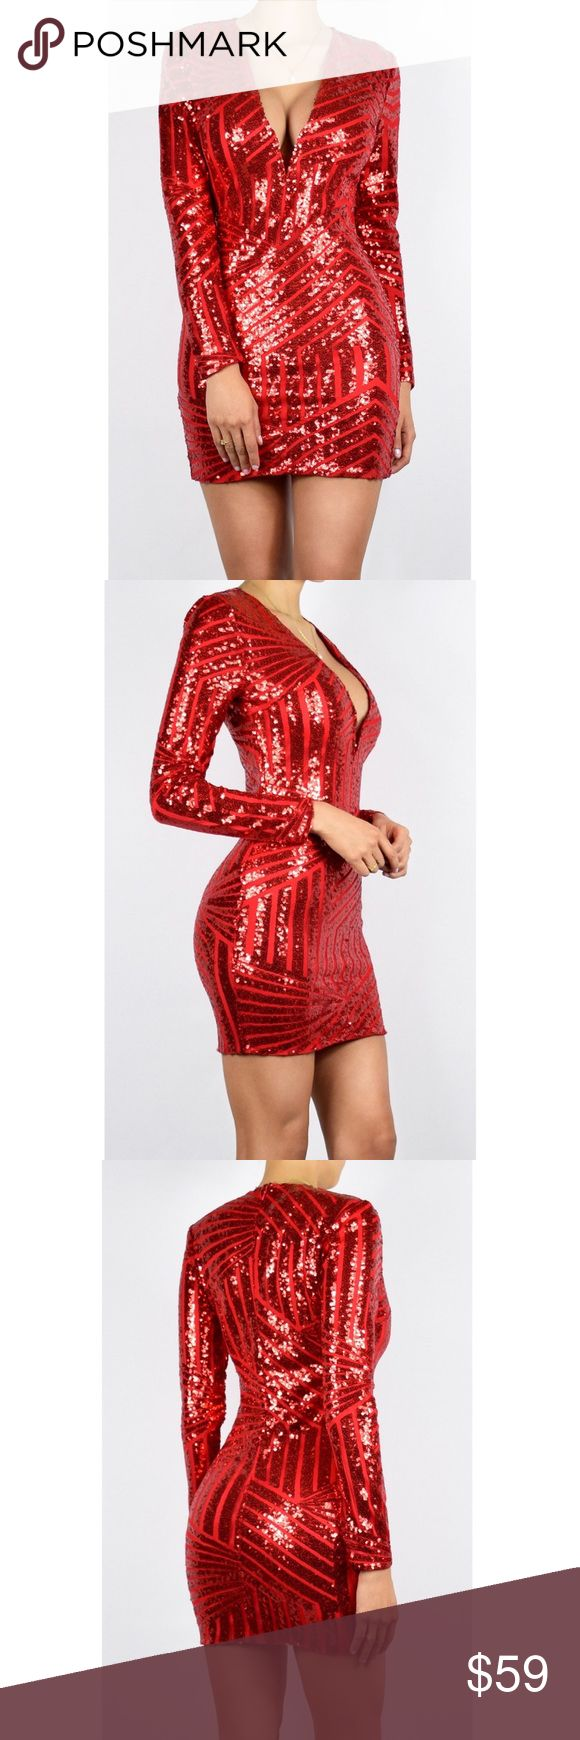 """Red Sequin Long Sleeve Mini Dress Our 'Scarlet Sequin Mini Dress'  Features: -Sequin Detail -Back zipper -Deep V-cut -Textured -Figure-hugging  Material: 100% Polyester  Sizing: Model Measurements: - Height: 5'7.5"""" - Bust/Waist/Hips: 34""""/24.5""""/35""""  Model is wearing a size small. This item runs true to size. No stretch. Wardrobe Lane Dresses Mini"""